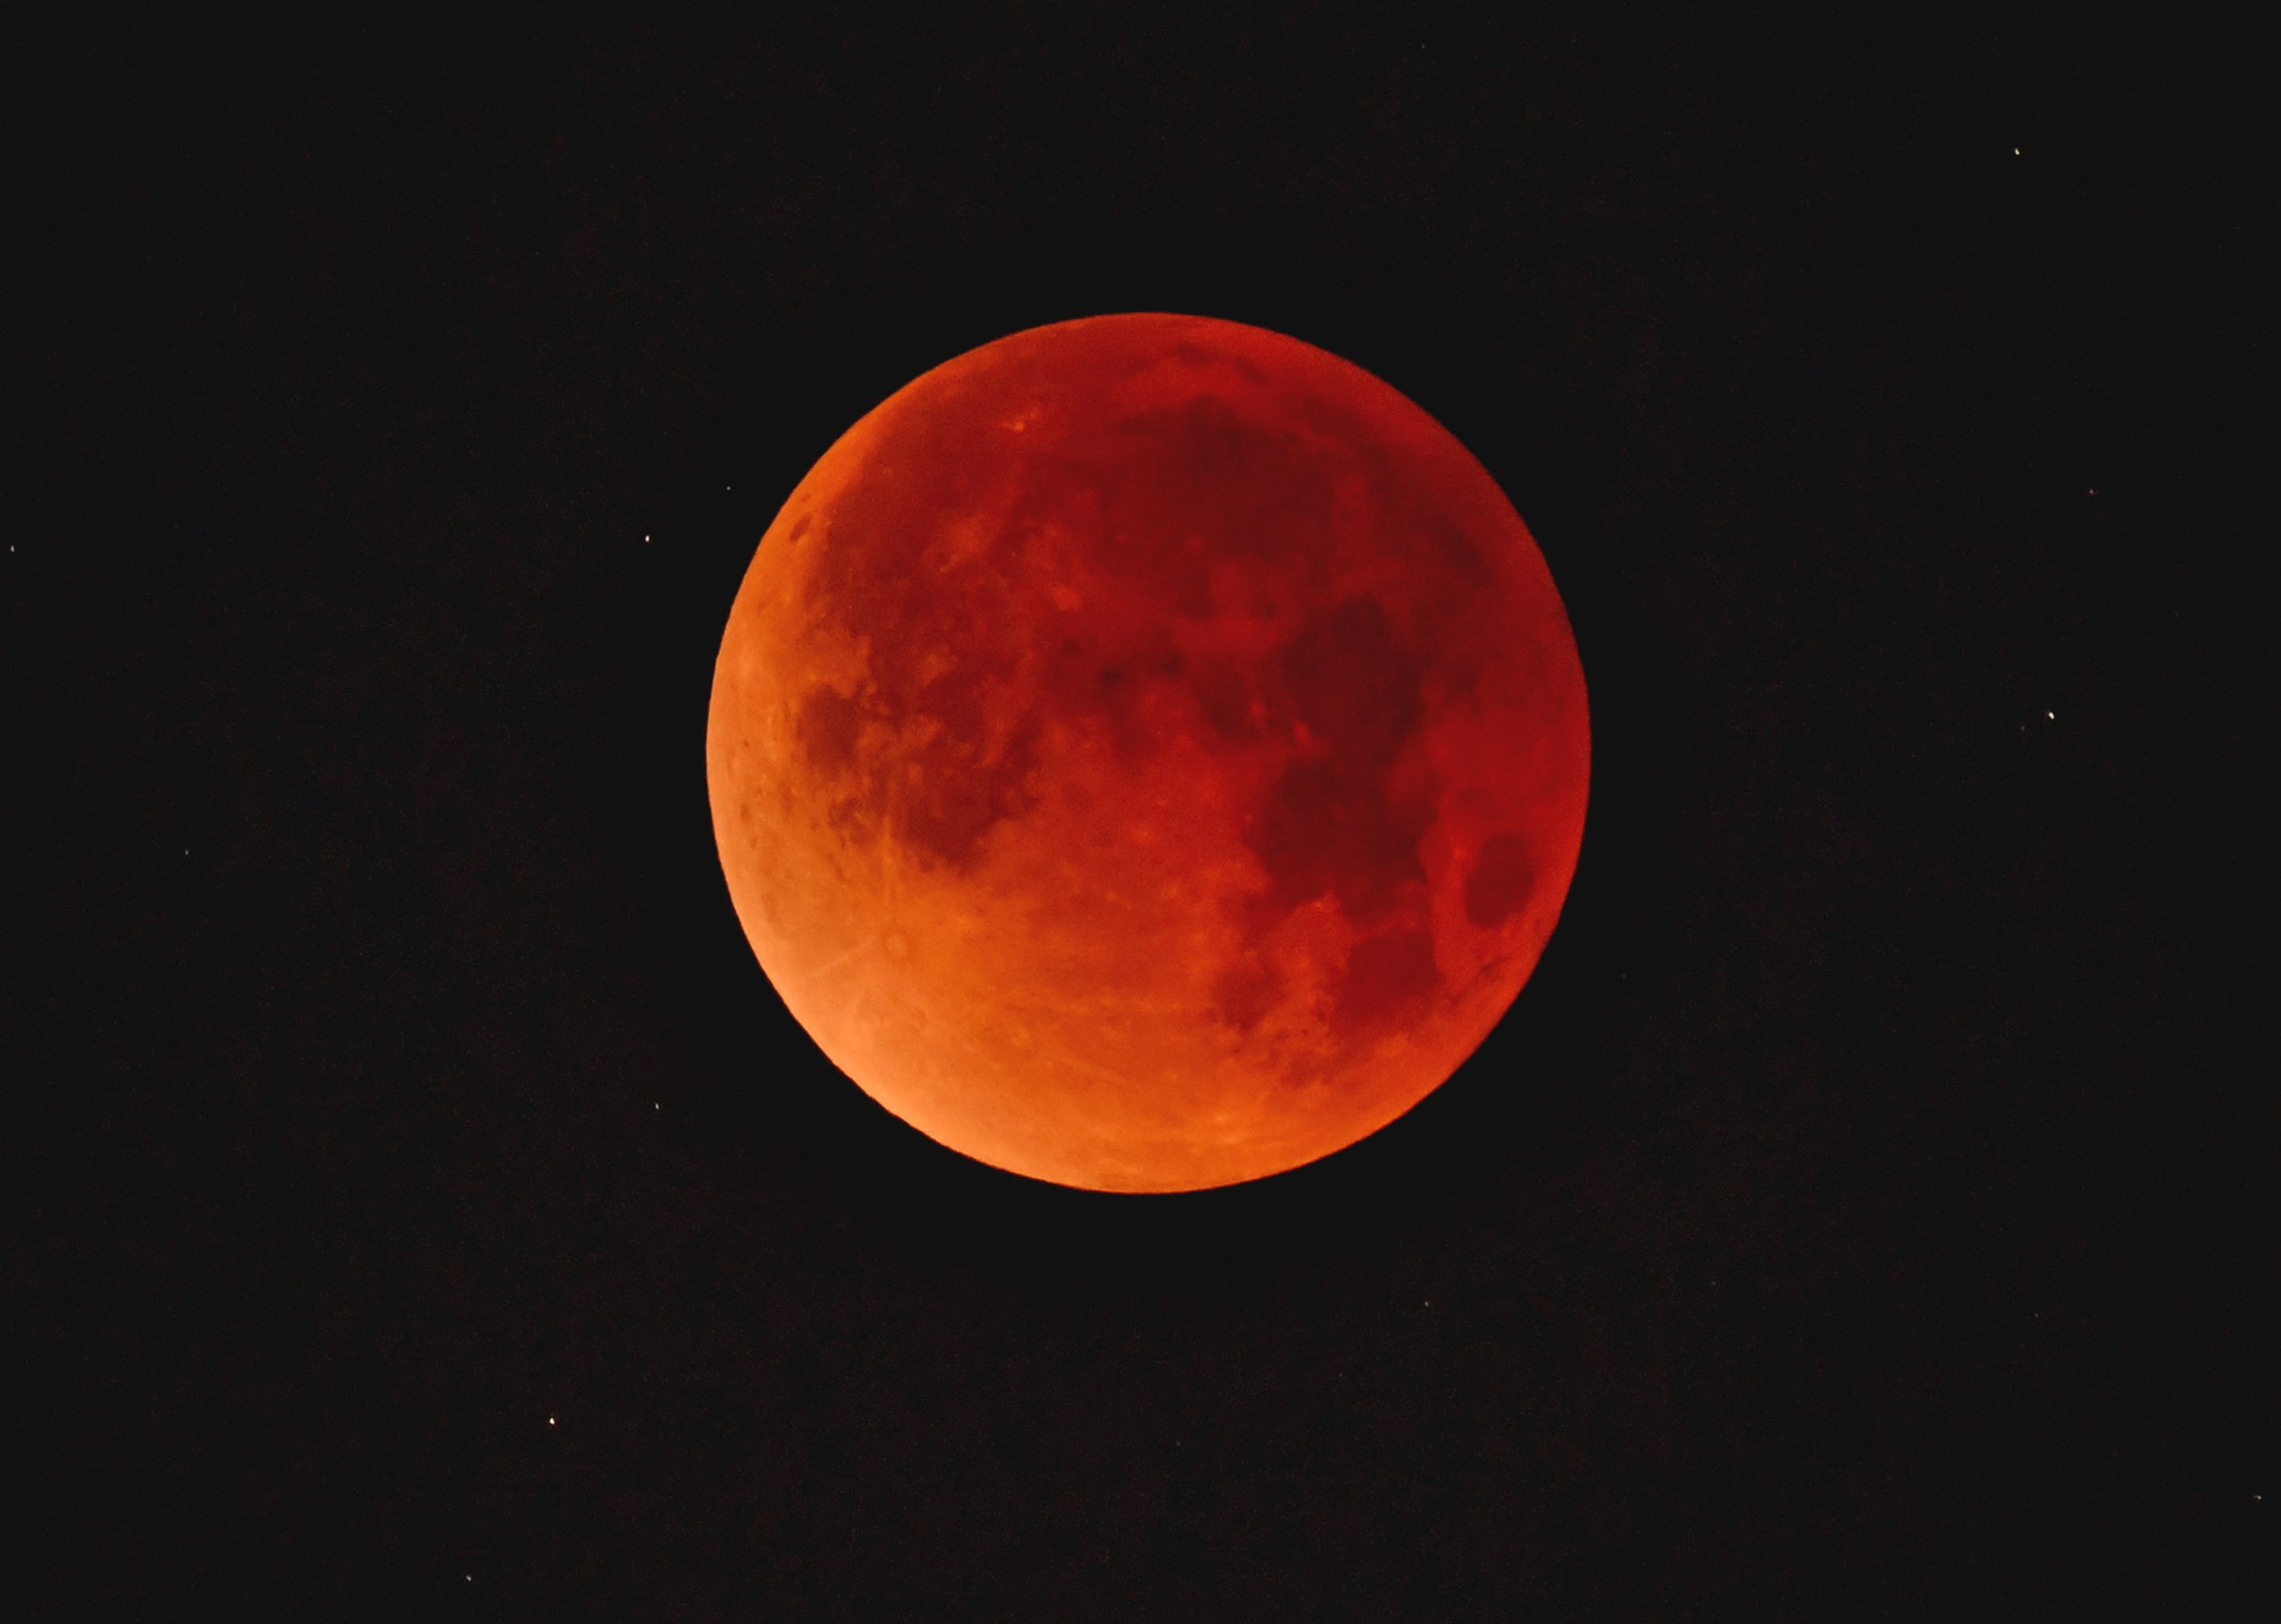 WHITTIER, CA - JANUARY 31: A so-called 'super blue blood moon' descends over downtown Los Angeles skyline January 31, 2018 seen from Whittier, California. The Super Blue Blood Moon is a rare 'lunar trifecta' event in which the Moon is at its closest to the Earth, appearing about 14 percent brighter than usual, and is simultaneously a 'blue moon', the second full moon in the same month, as well as a total lunar eclipse or 'blood moon'. Such a lunar event that hasn't been seen since 1866. (Photo by Nick Ut/Getty Images)